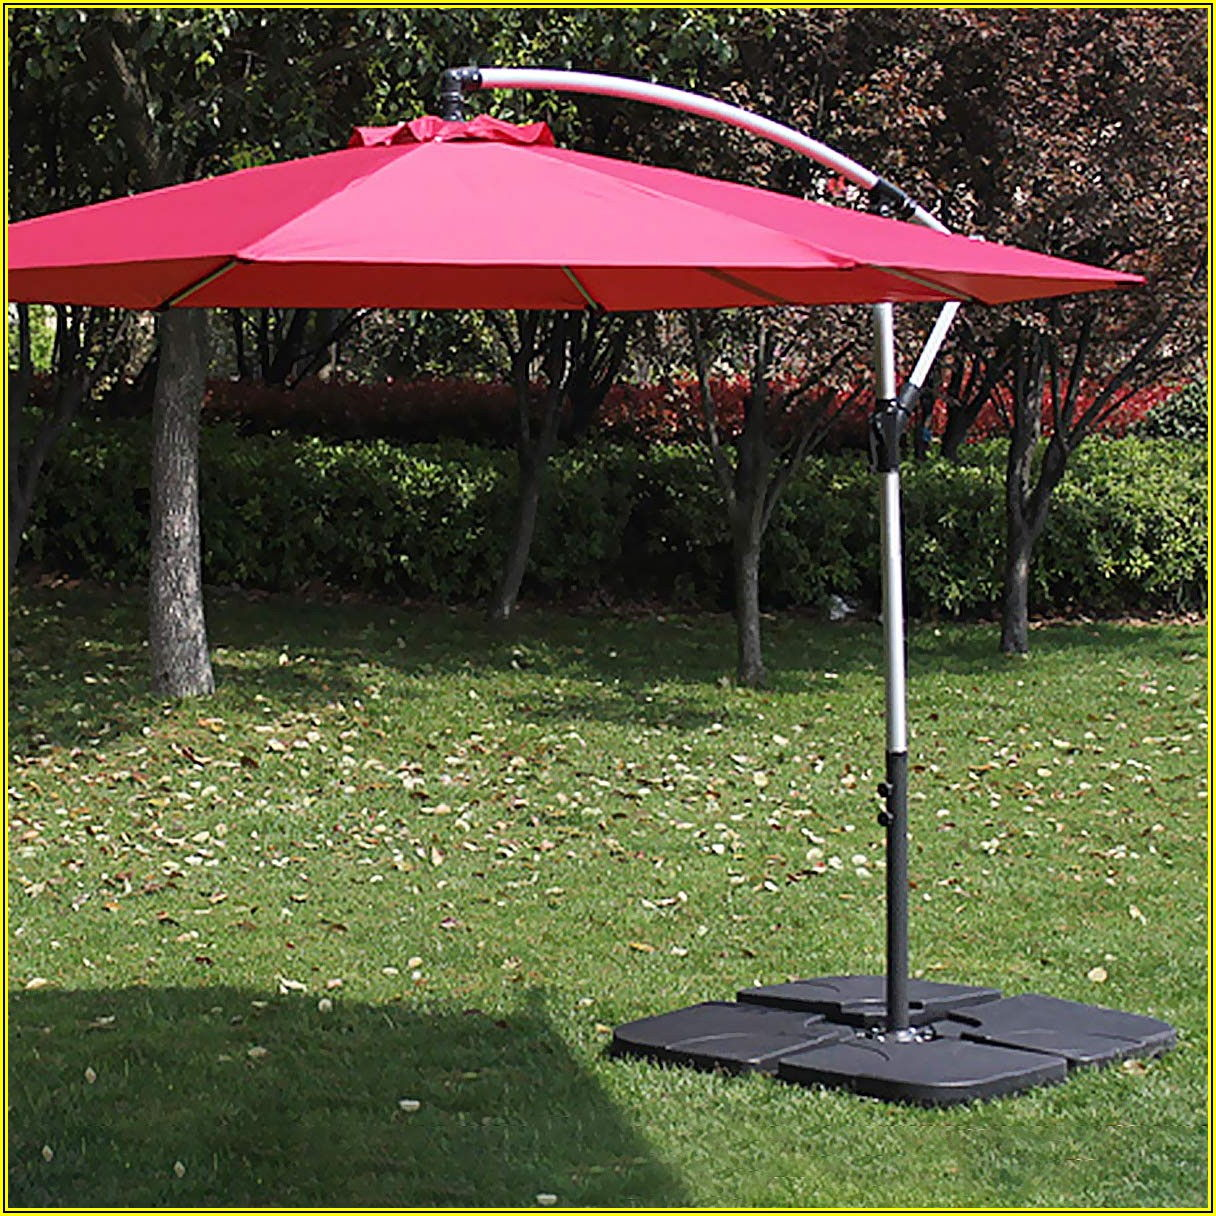 4 Square Patio Umbrella